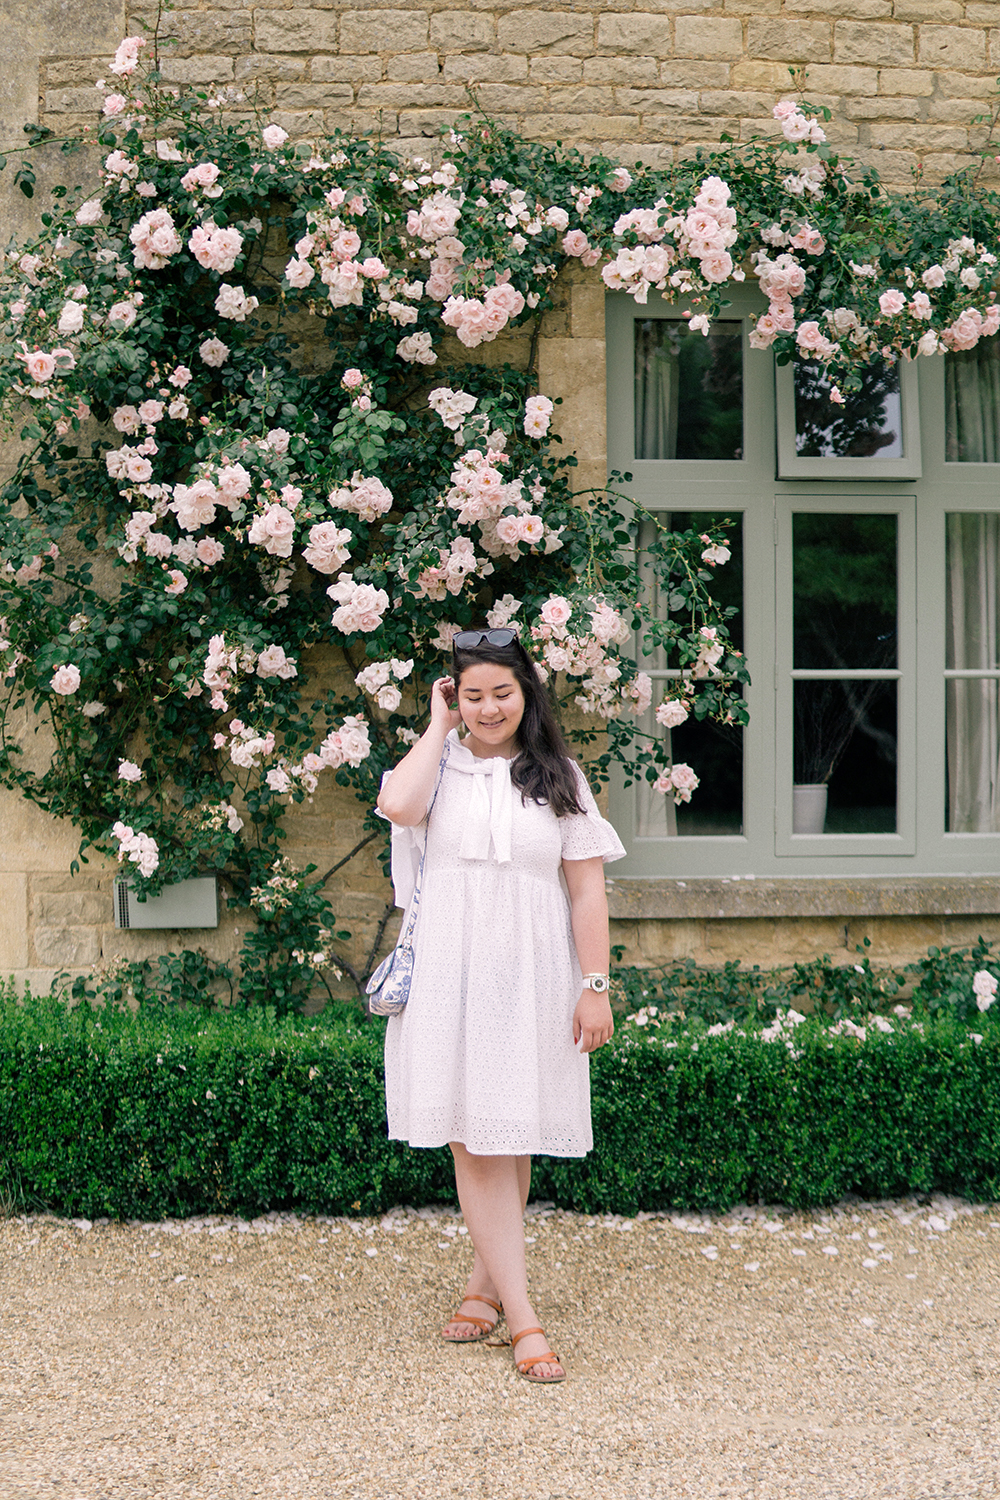 Daylesford-Cotswolds-Barely-There-Beauty-blog-classic-summer-style